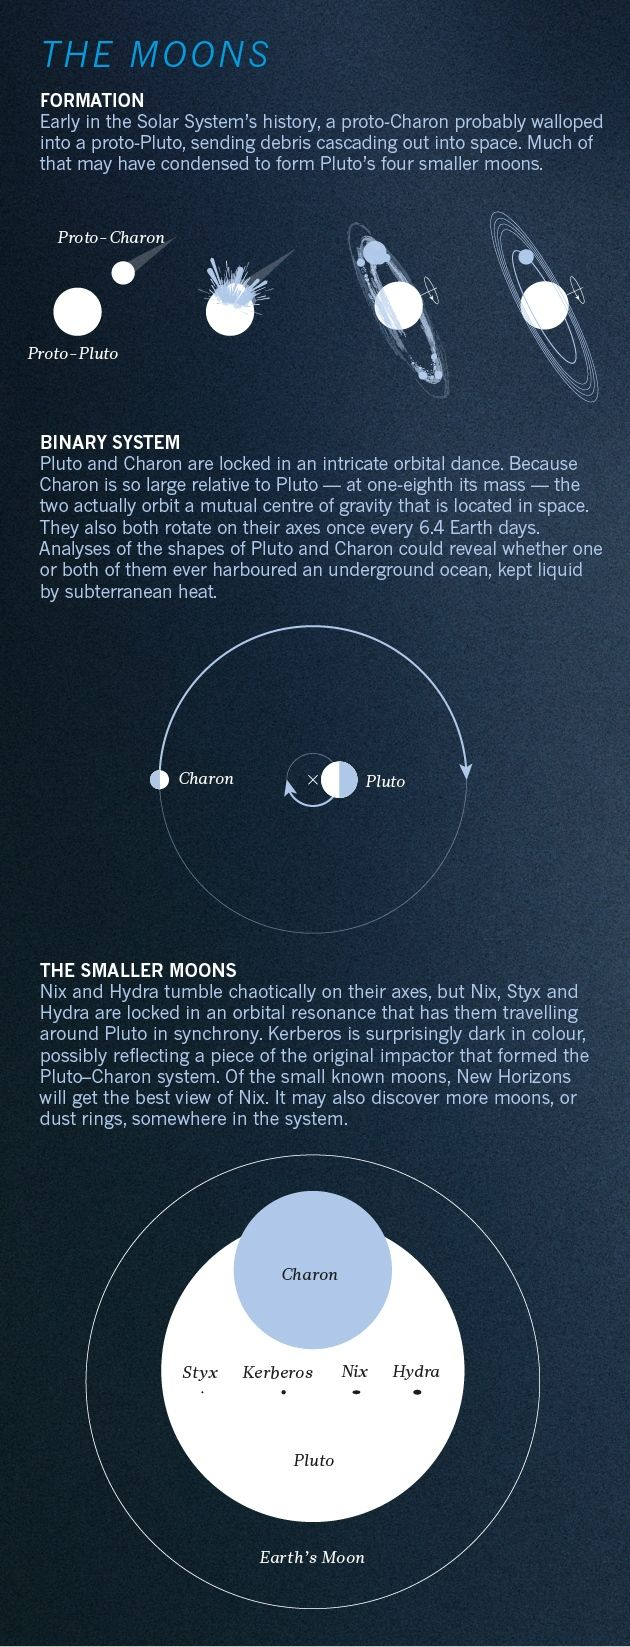 295 Best Science Images On Pinterest Outer Space And Stars Lunar Meteorite Caravan Wiring Diagram Pluto Fly By A Graphical Guide To The Historic Mission Nature News